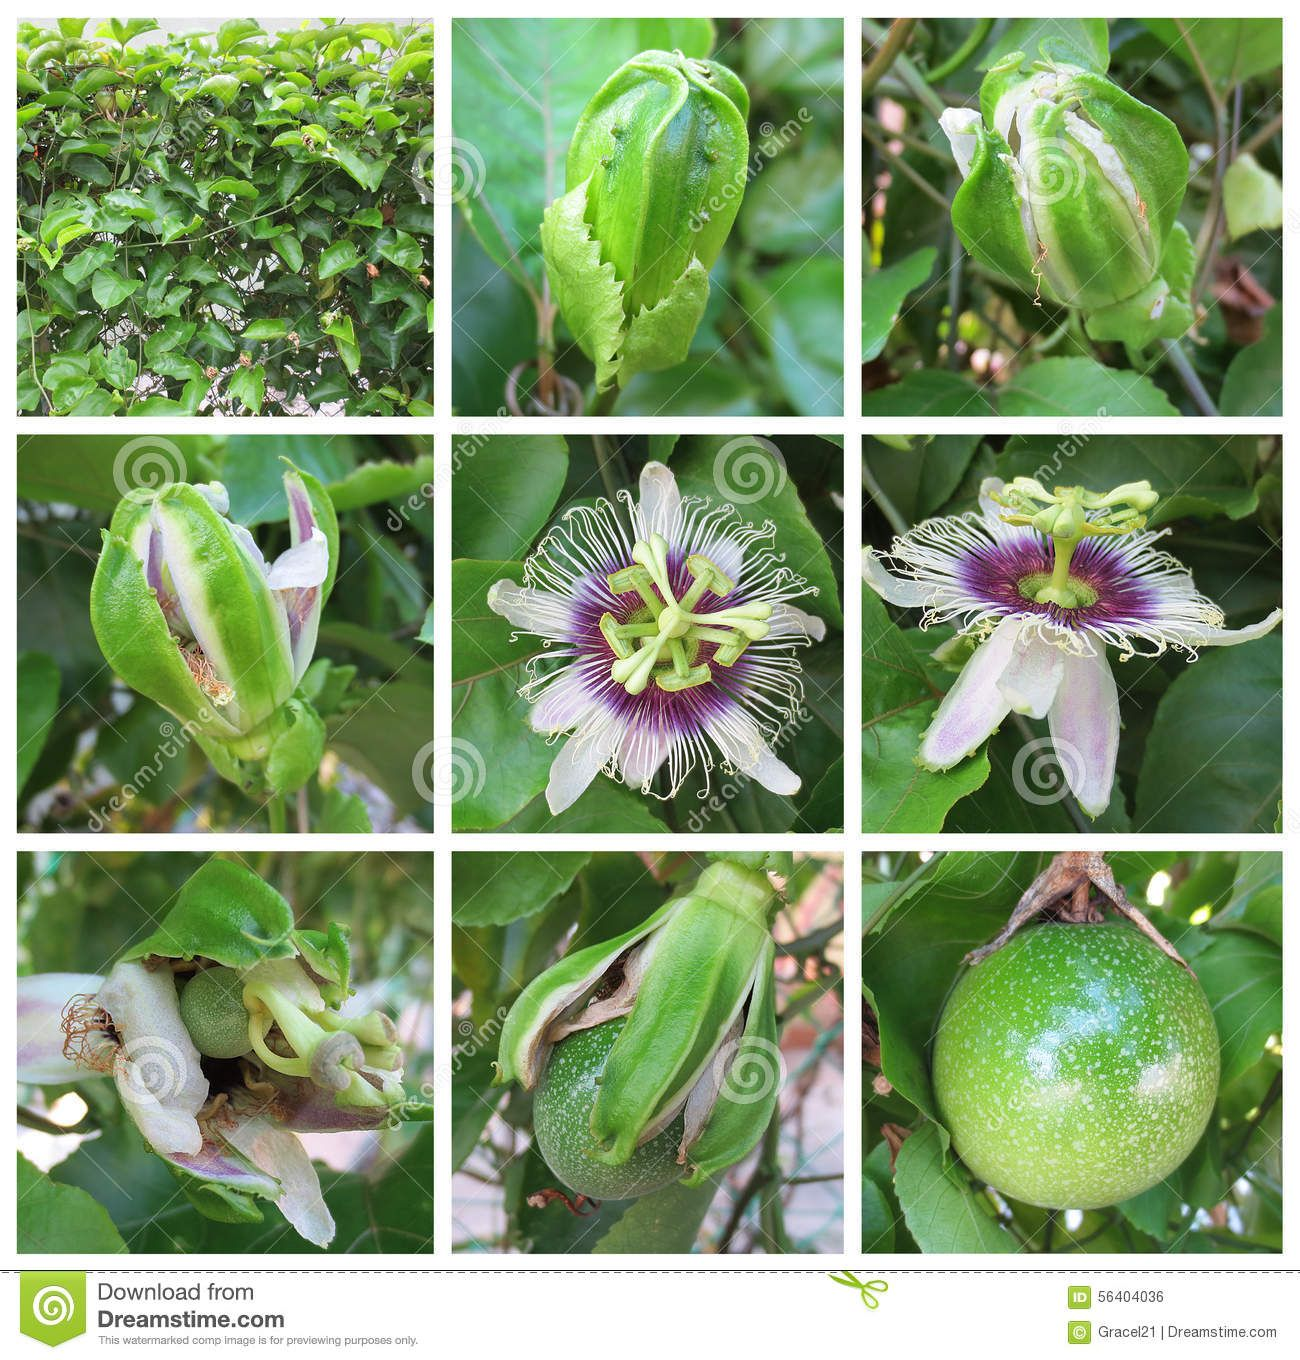 Passion Fruit Download From Over 48 Million High Quality Stock Photos Images Vectors Sign Up For Free Today Image 5640 Passion Fruit Fruits Images Fruit